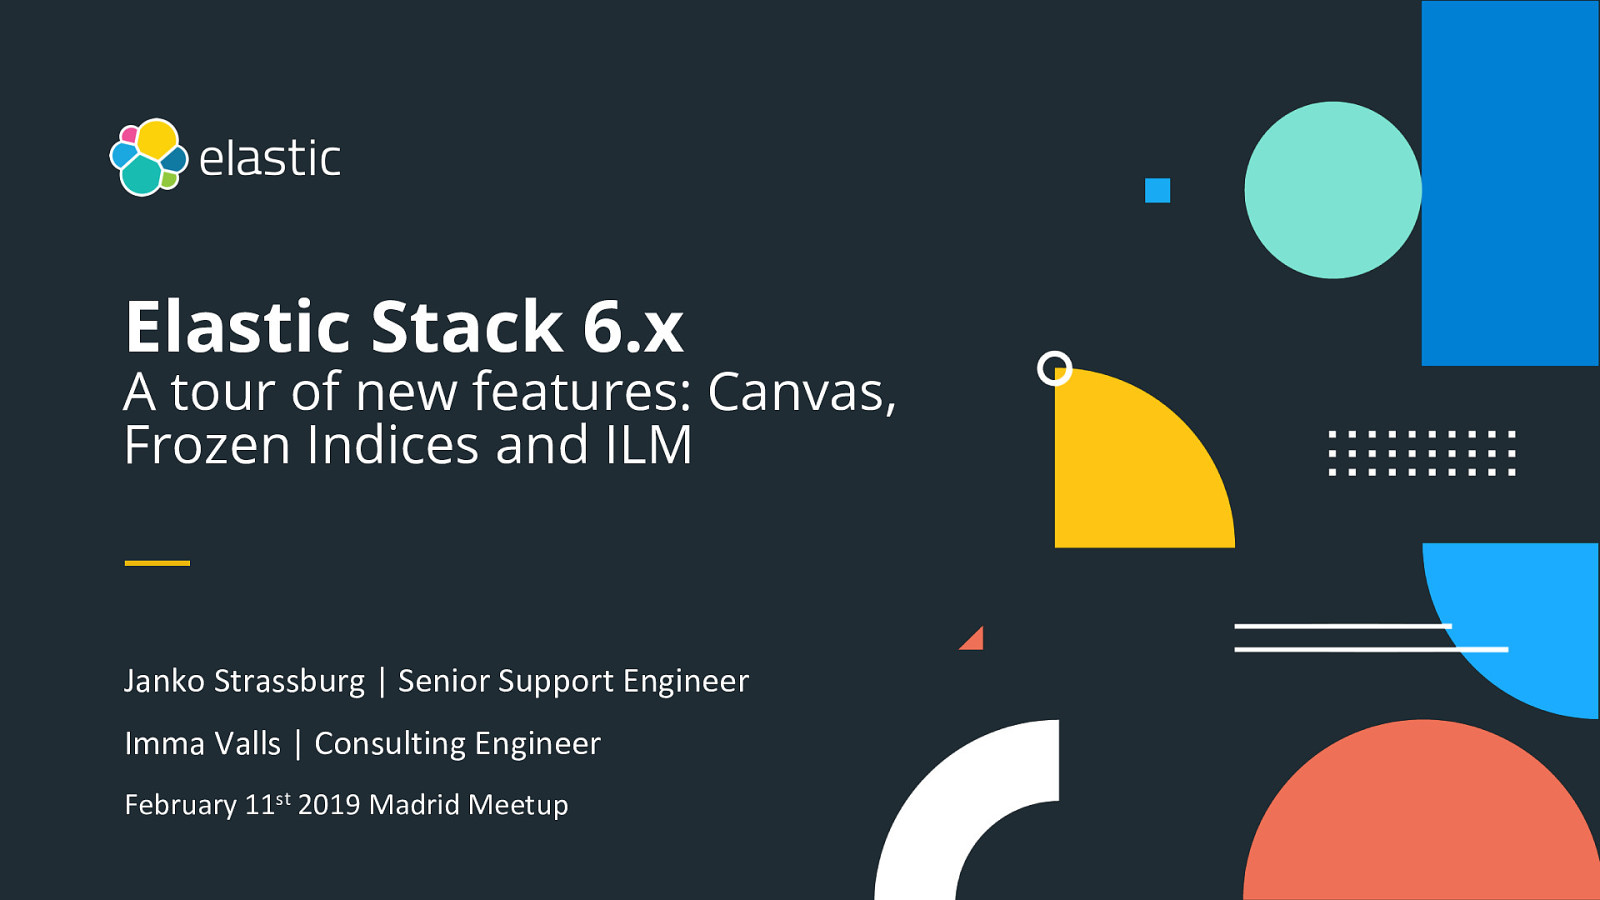 Madrid Elastic Meetup February 11 2019 - Release 6.x features